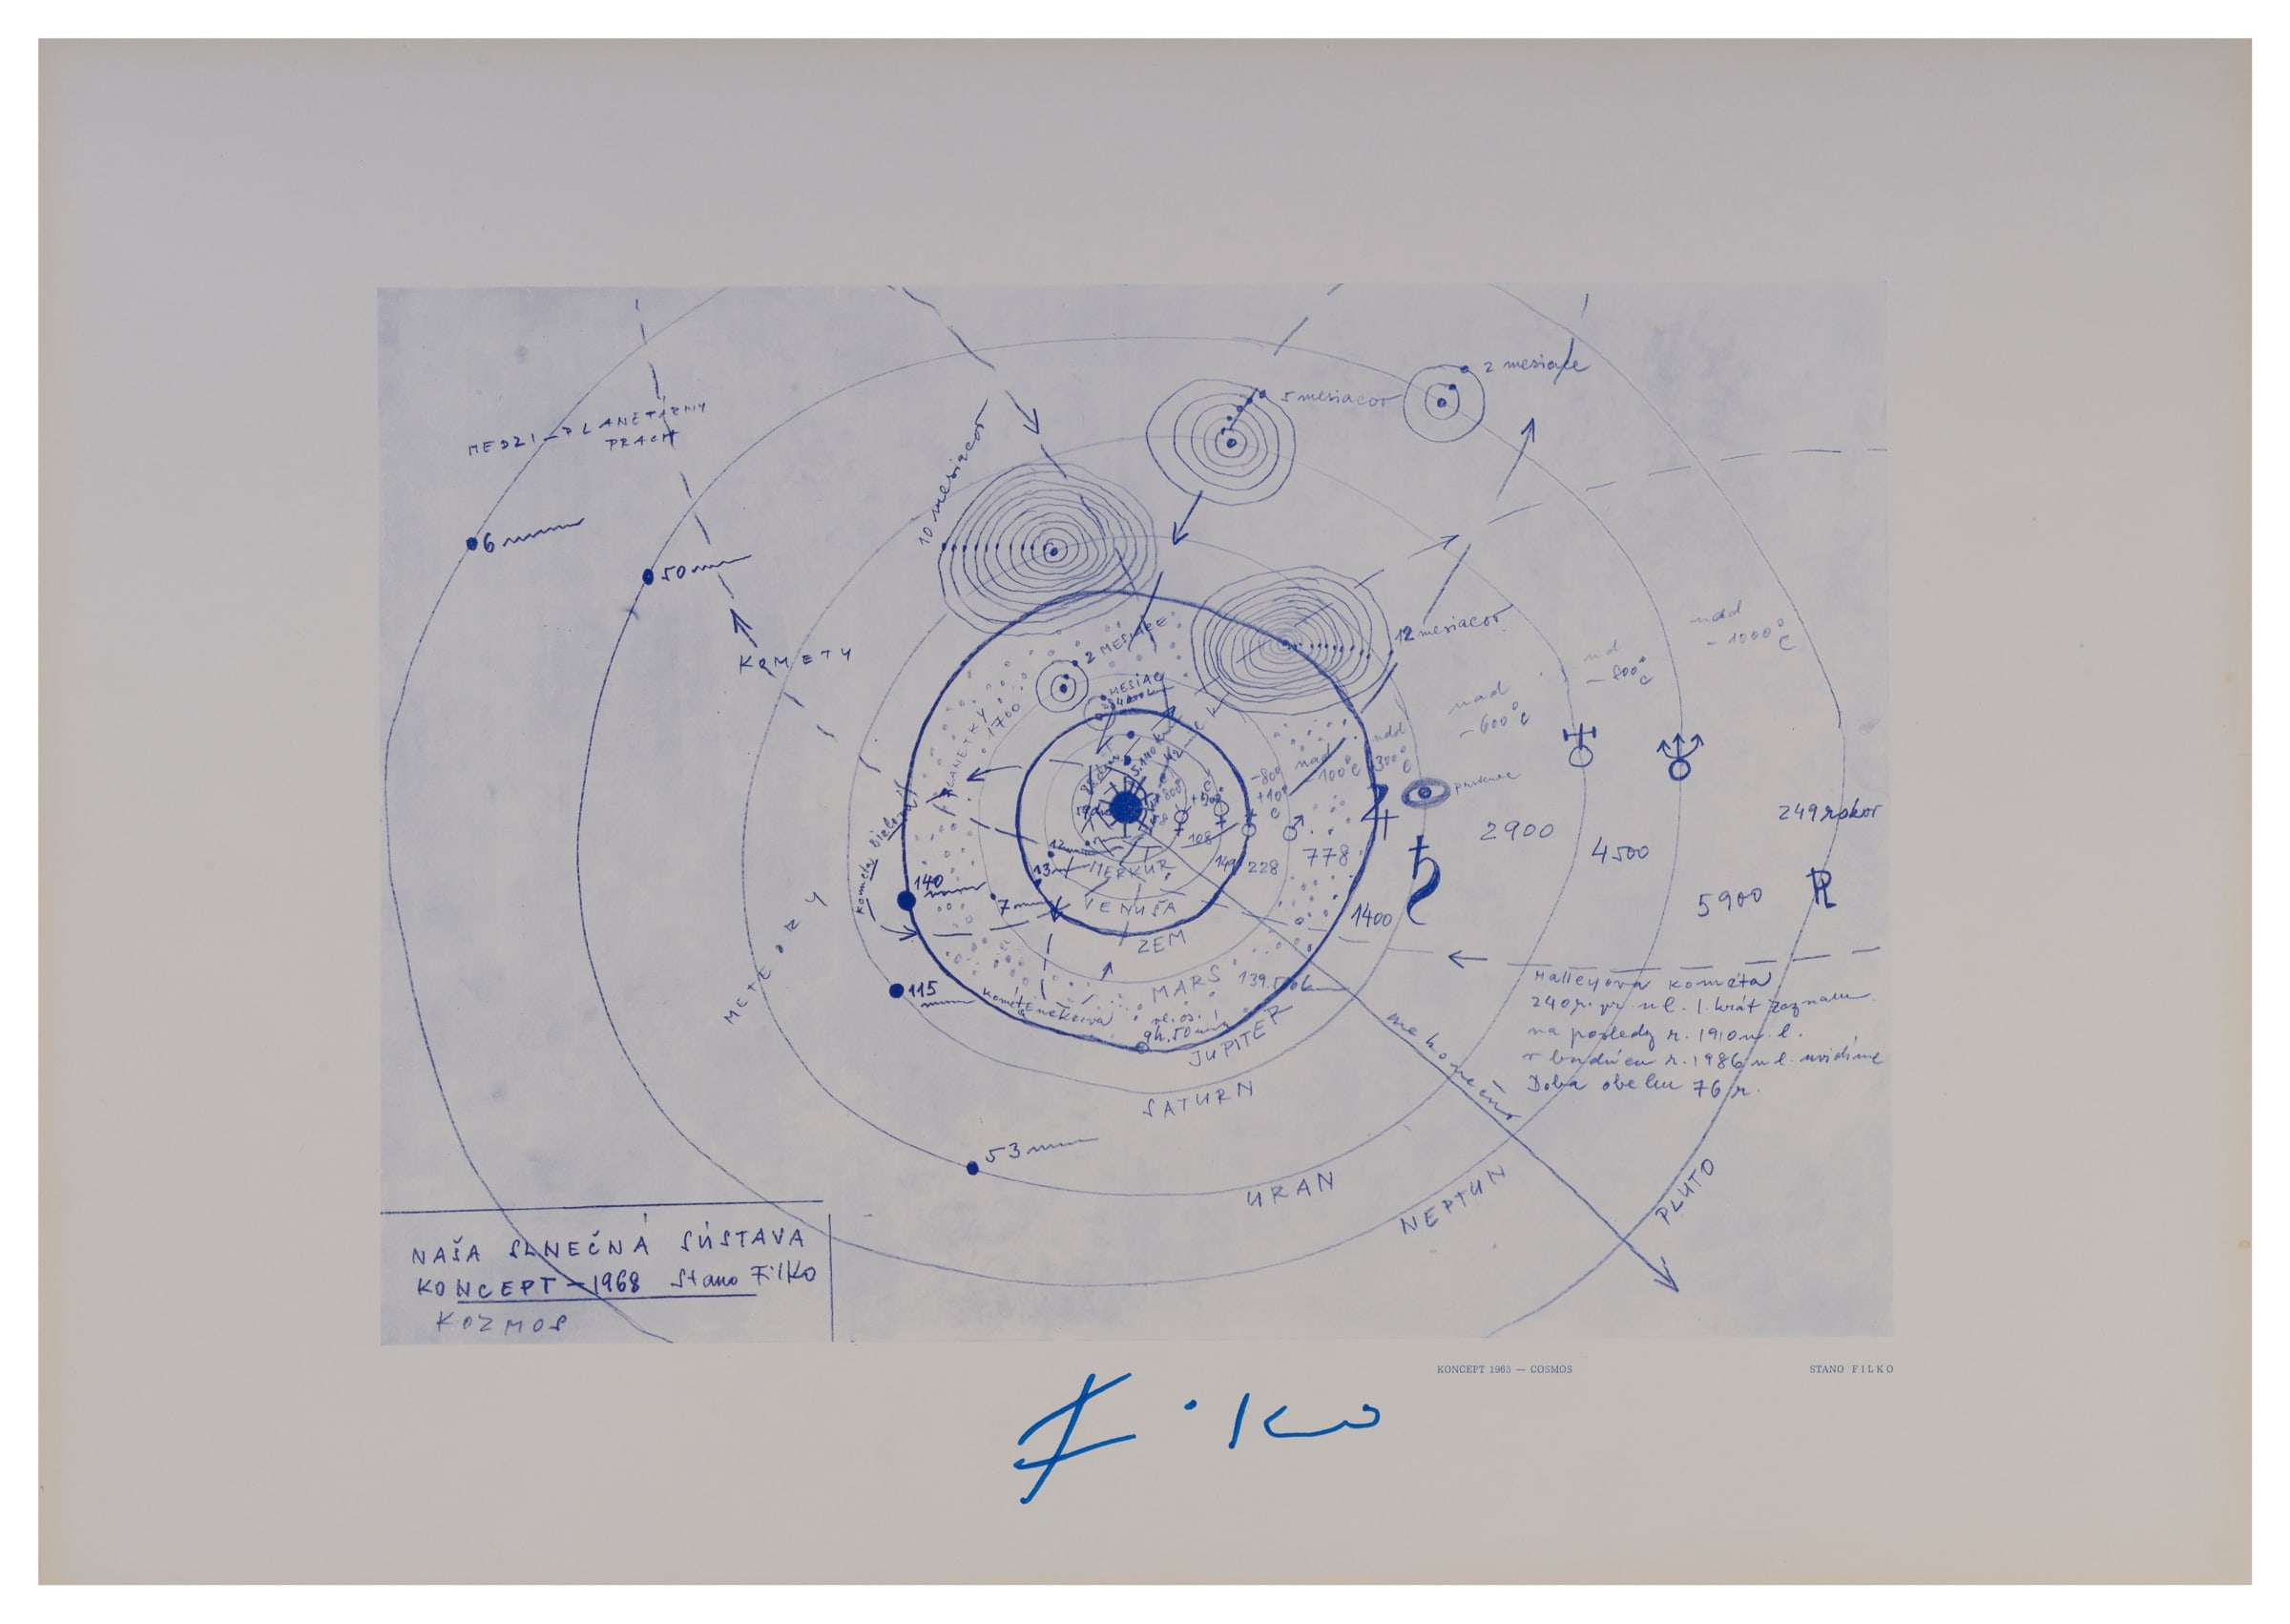 "<span class=""link fancybox-details-link""><a href=""/artists/126-stano-filko/works/10284-stano-filko-concept-cosmos.-manual-for-constructing-our-solar-system-1968/"">View Detail Page</a></span><div class=""artist""><span class=""artist""><strong>STANO FILKO</strong></span></div>